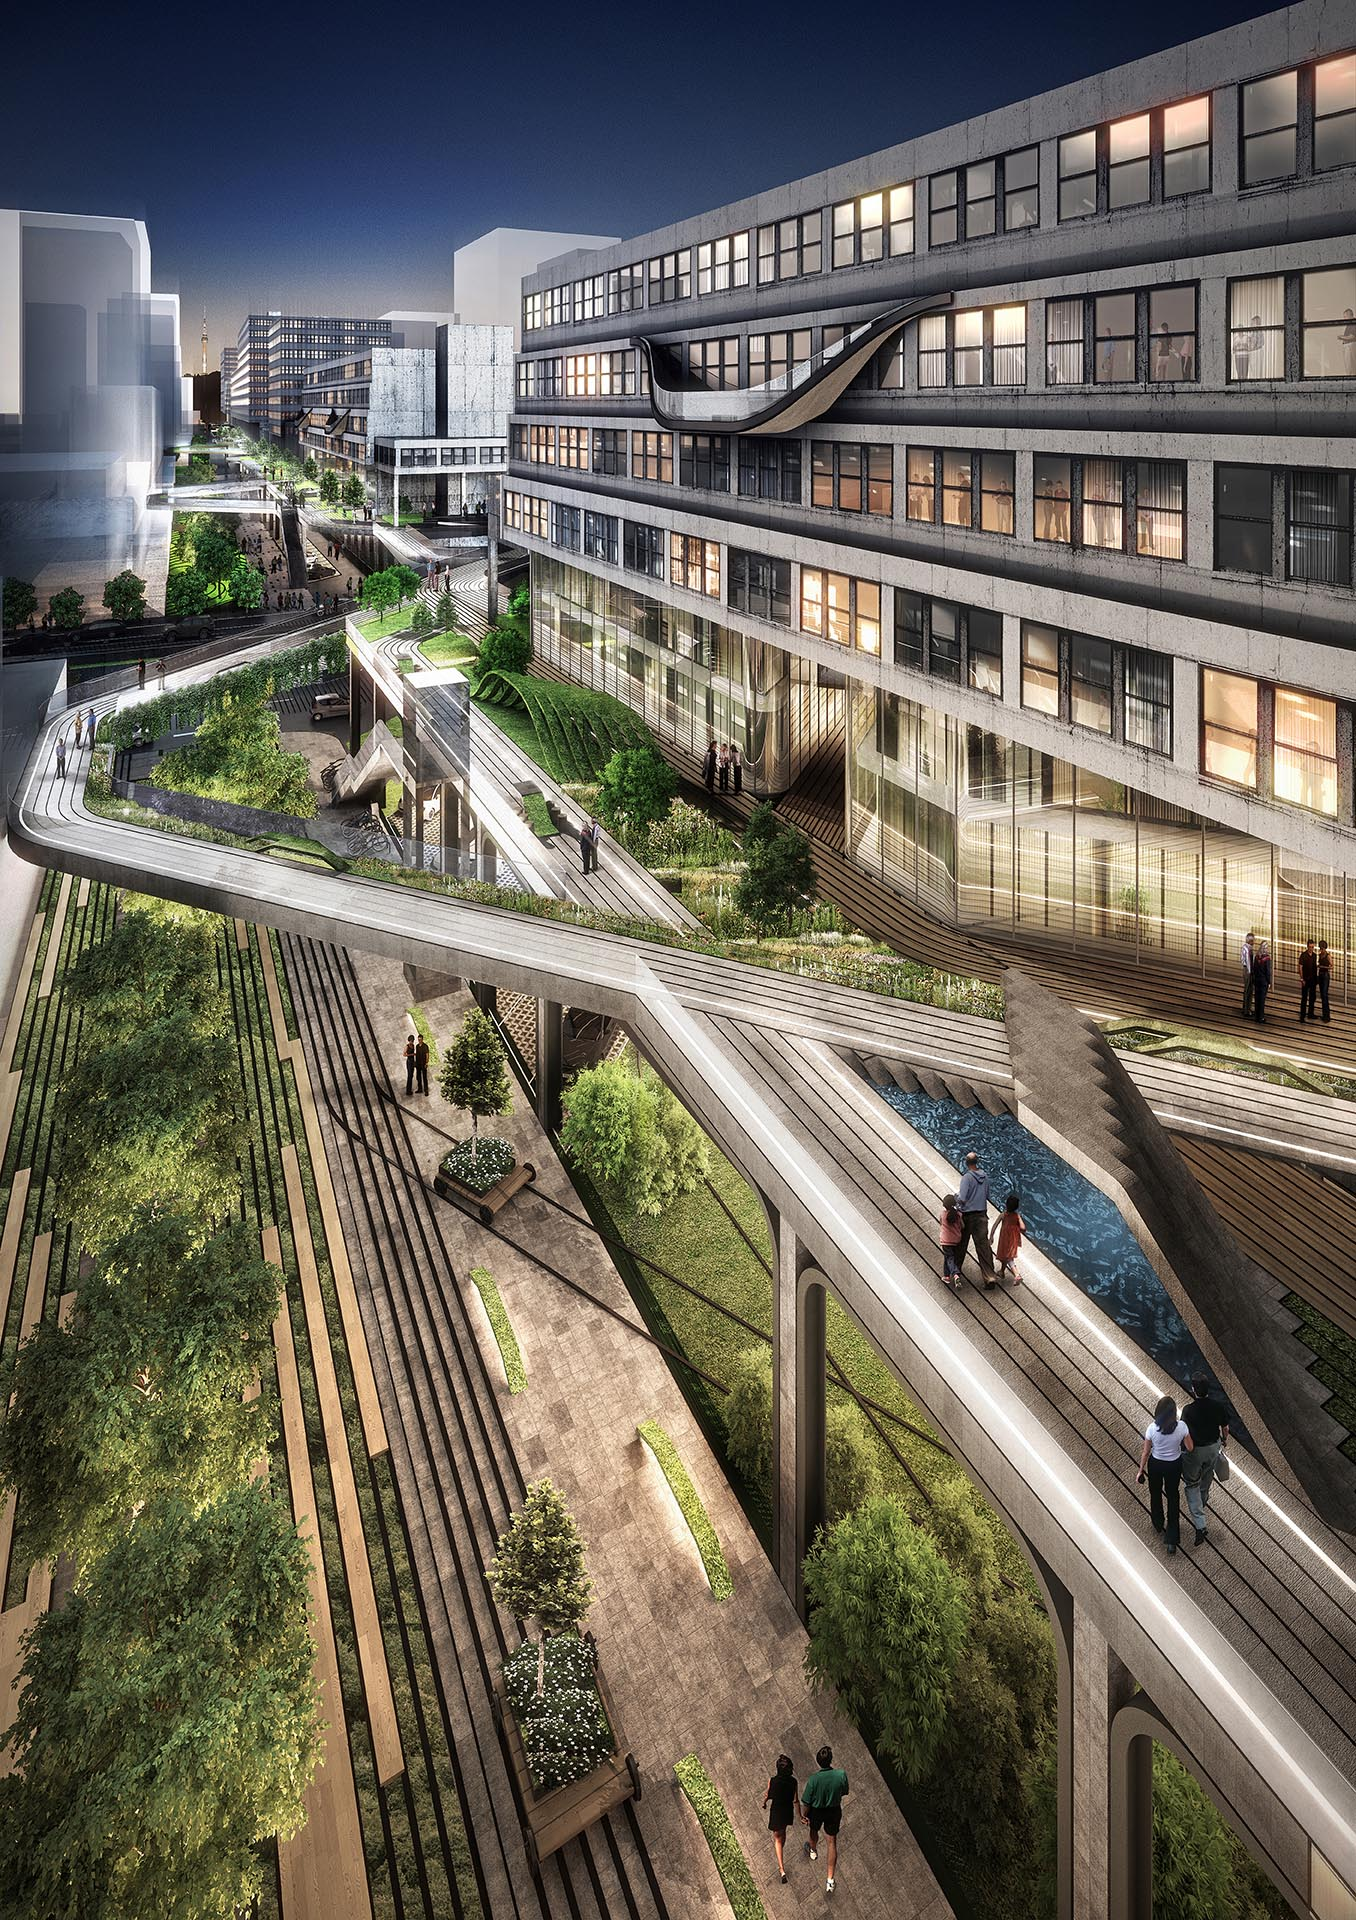 Seun city walk, Seunsangga, Seun, high line in Korea, 3d print landscape, urban planning, retrofit, factory rehab, seoul, greenwalk, elevated park, sustainable design, architecture, hipster, business evolution